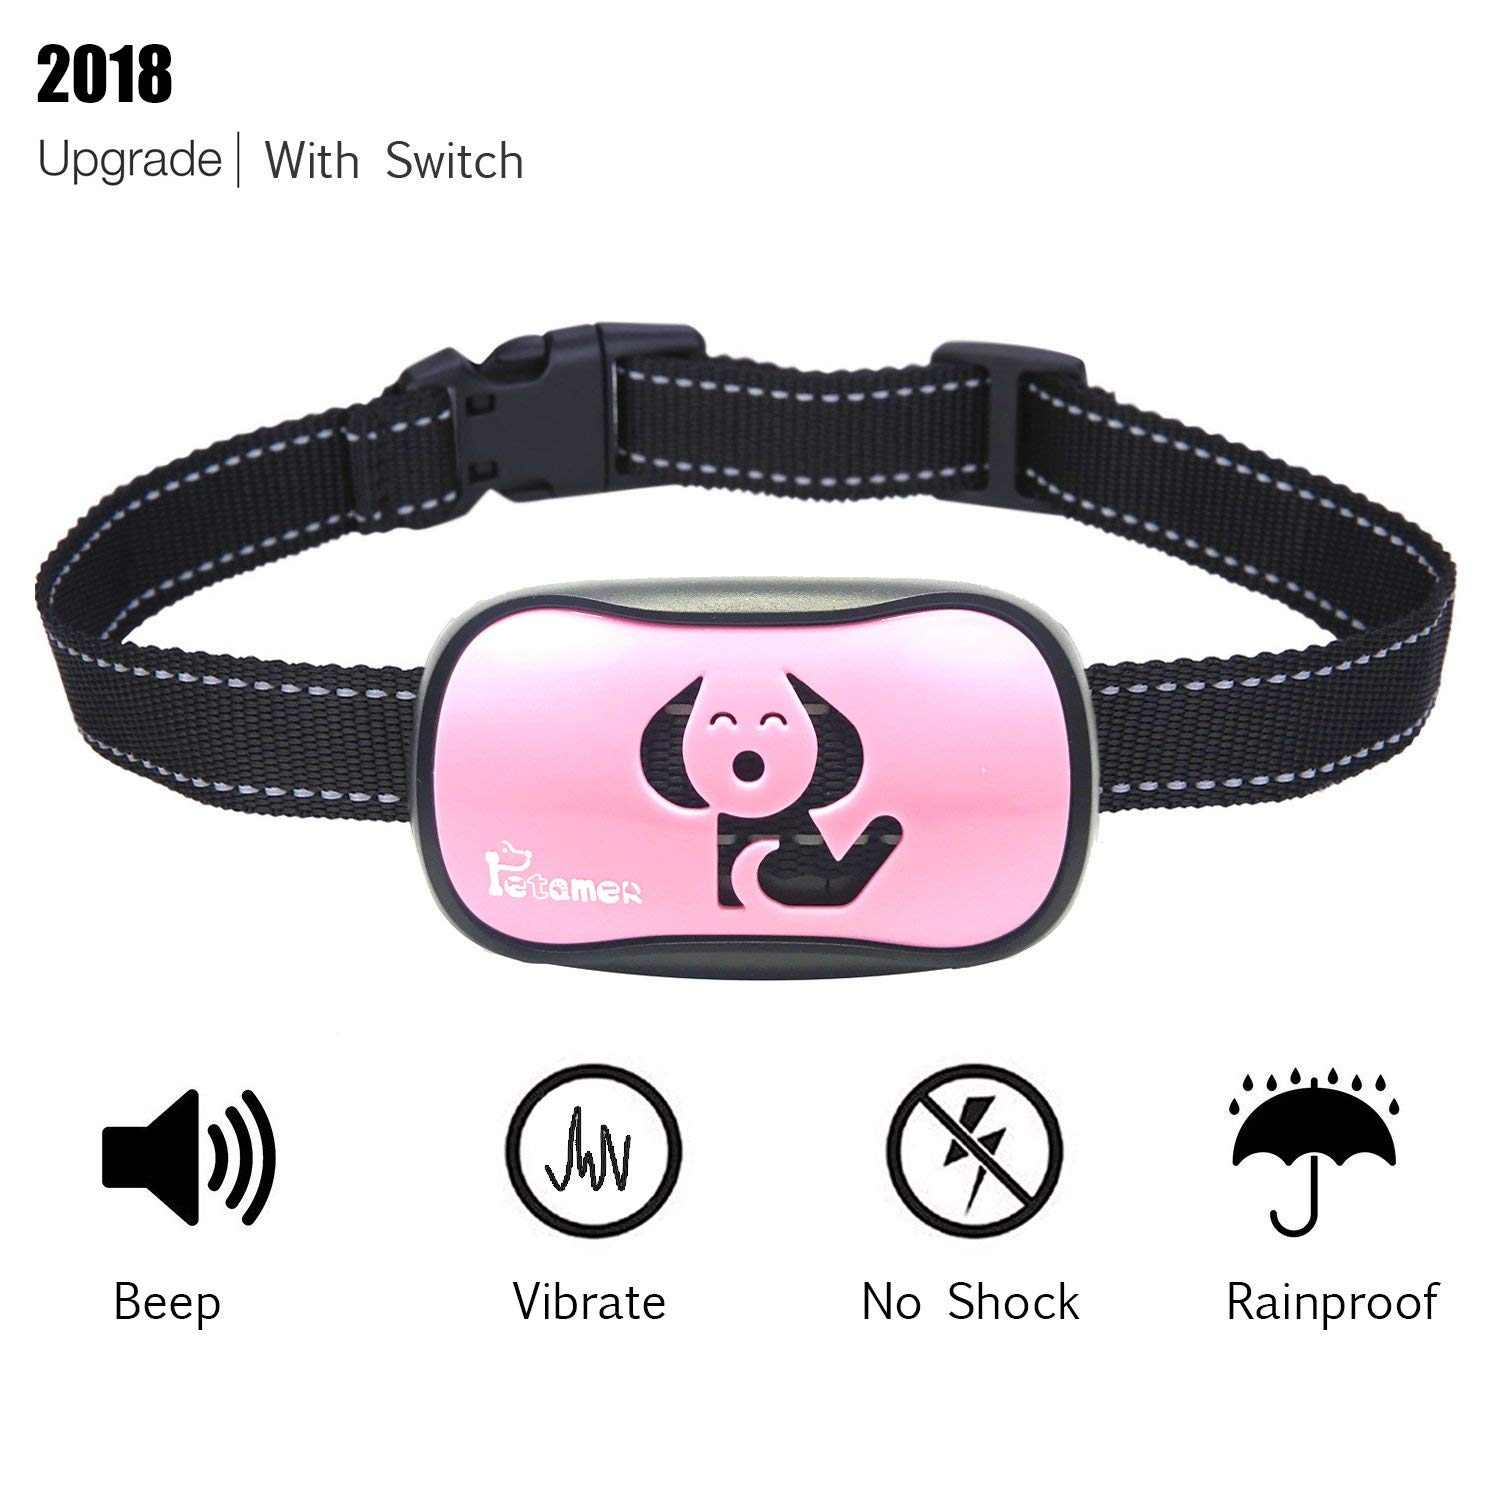 PETAMER ZuZu Bark Collar [New Version With Swith] Automatic Anti Bark Dog Training E Collar,Safe & Humane - No Shock - No Harm - Waterproof Vibrate Barking Control Devices for Small Medium Large Dogs